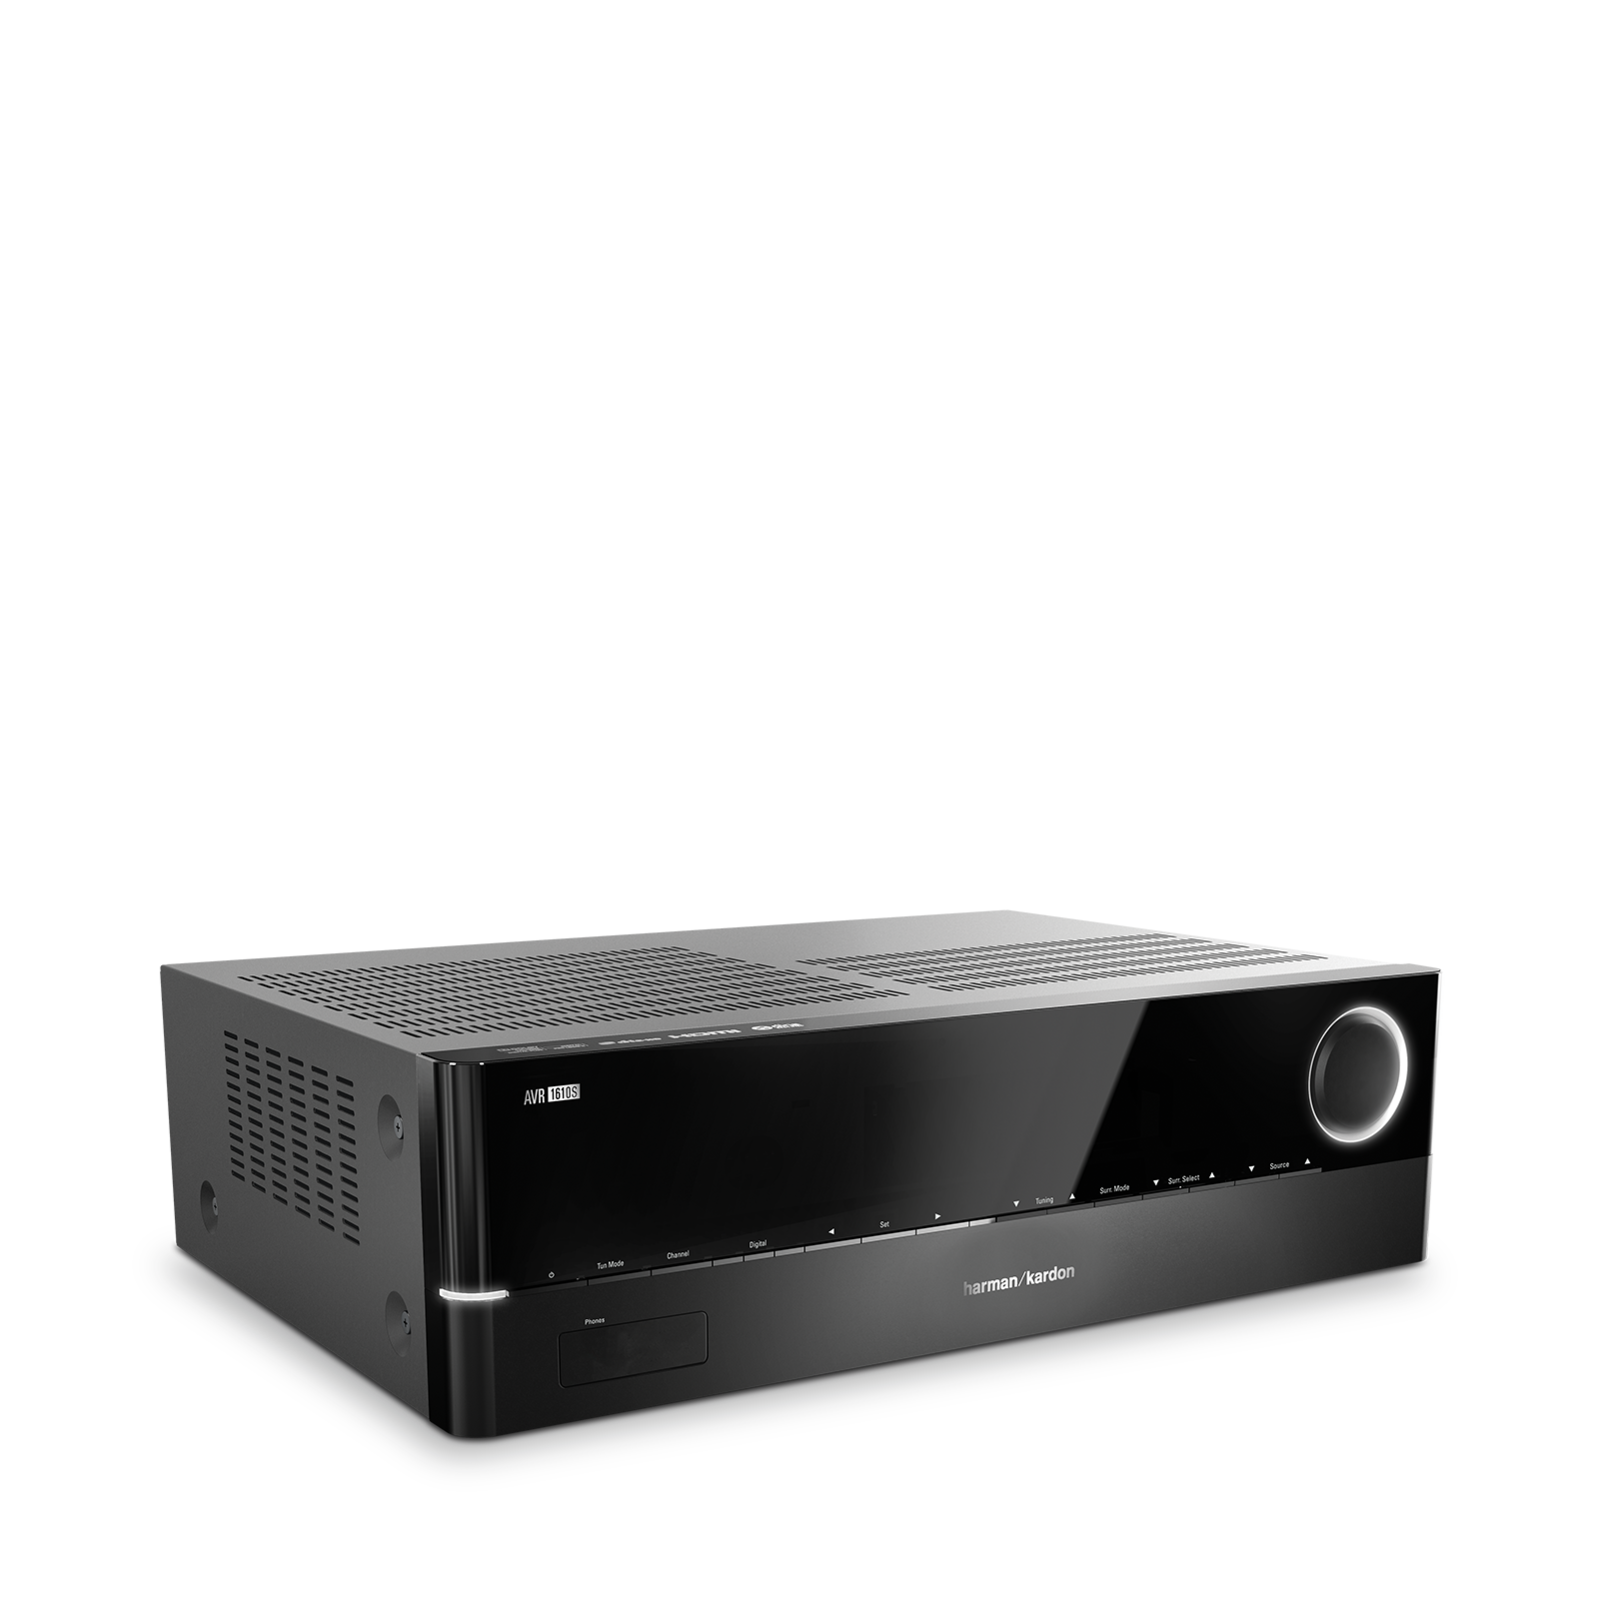 AVR 1610S - Black - 425-watt, 5.1-channel, networked A/V receiver with HARMAN TrueStream, Bluetooth technology and five HDMI® 2.0 inputs including an MHL port - Hero